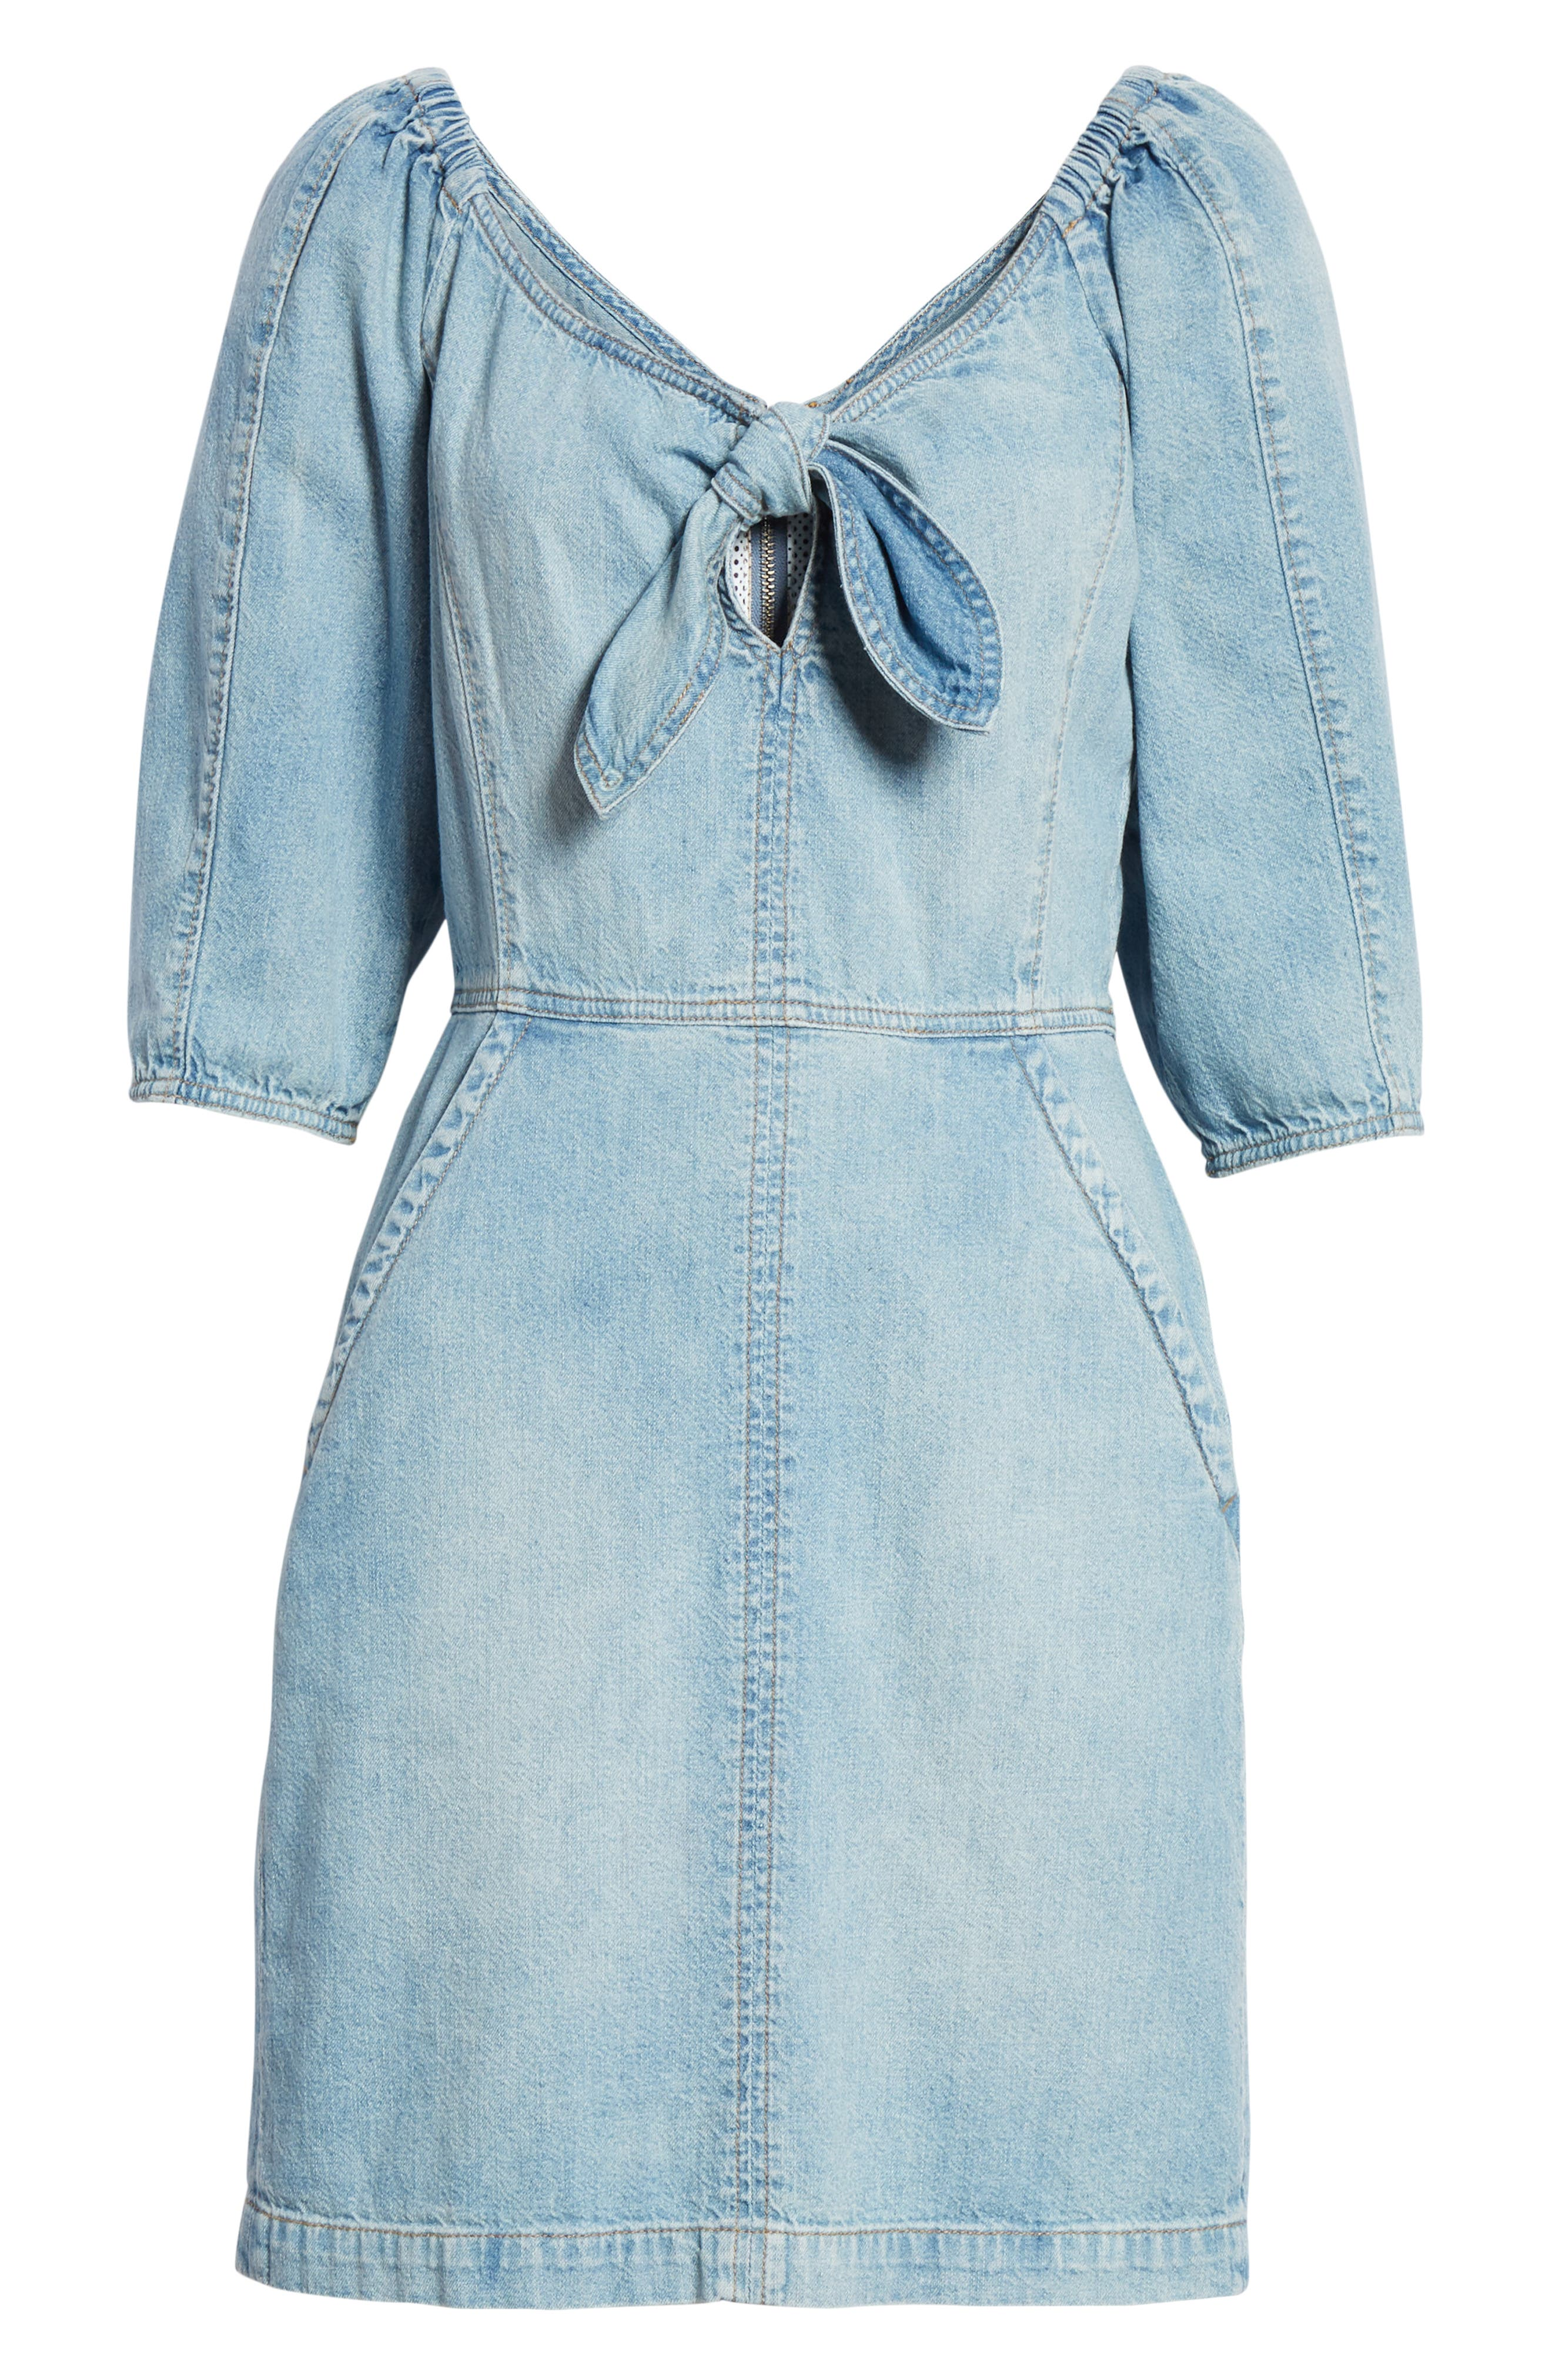 LA VIE REBECCA TAYLOR, Tie Neck Denim Dress, Alternate thumbnail 6, color, FORGET ME NOT WASH